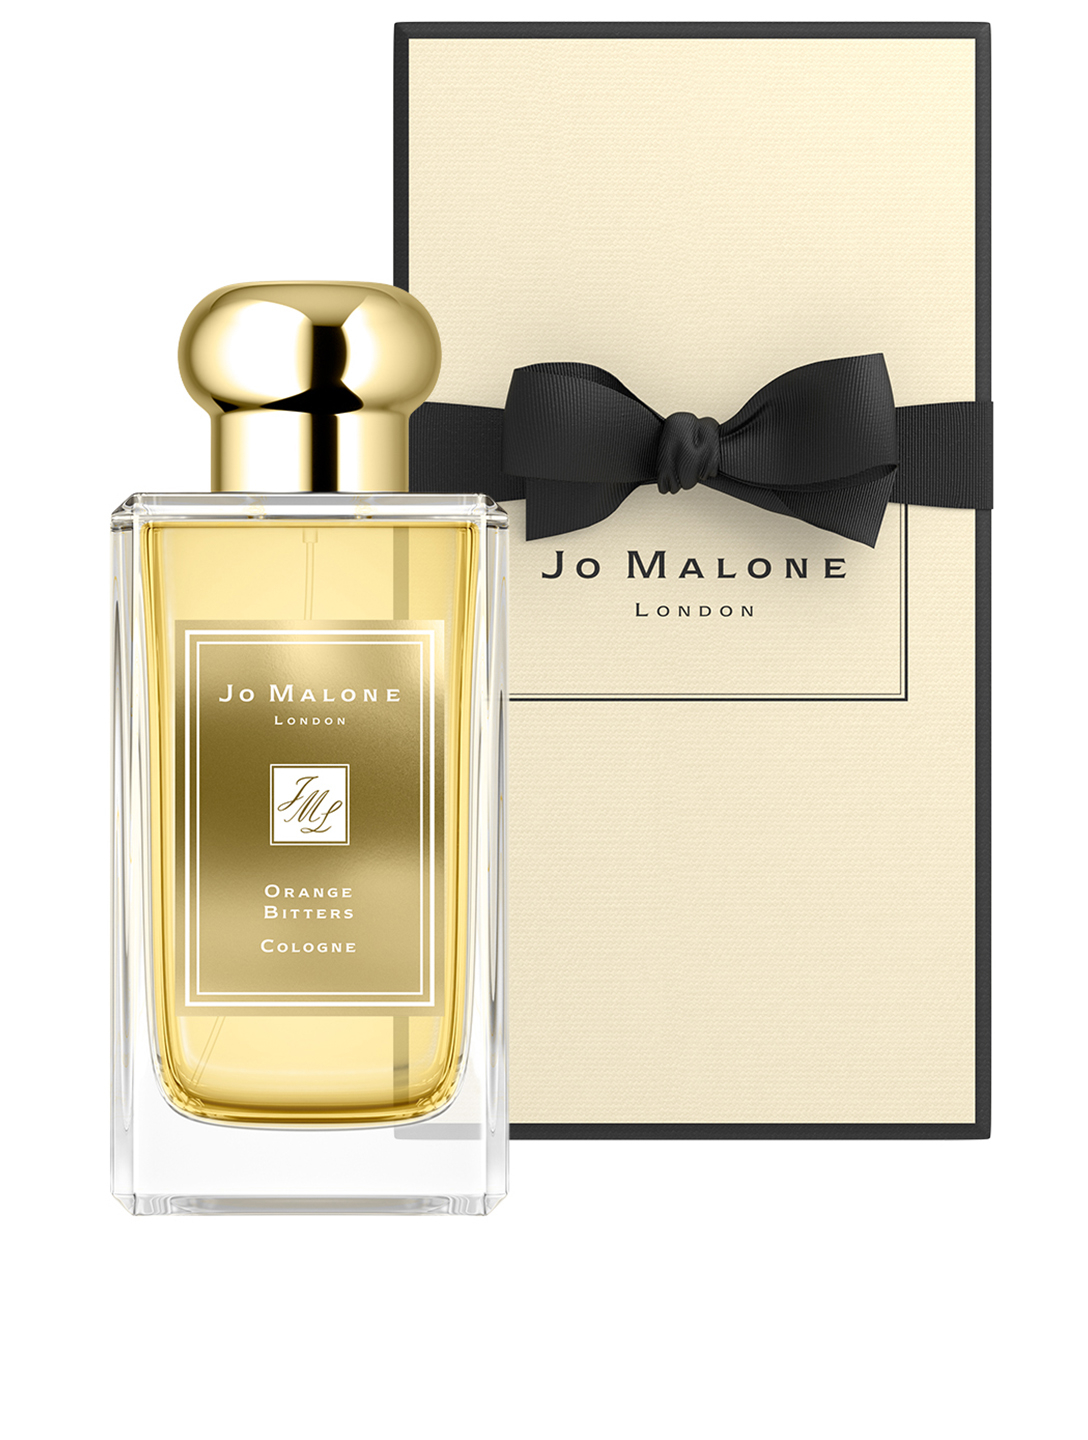 JO MALONE LONDON Orange Bitters Cologne Designers